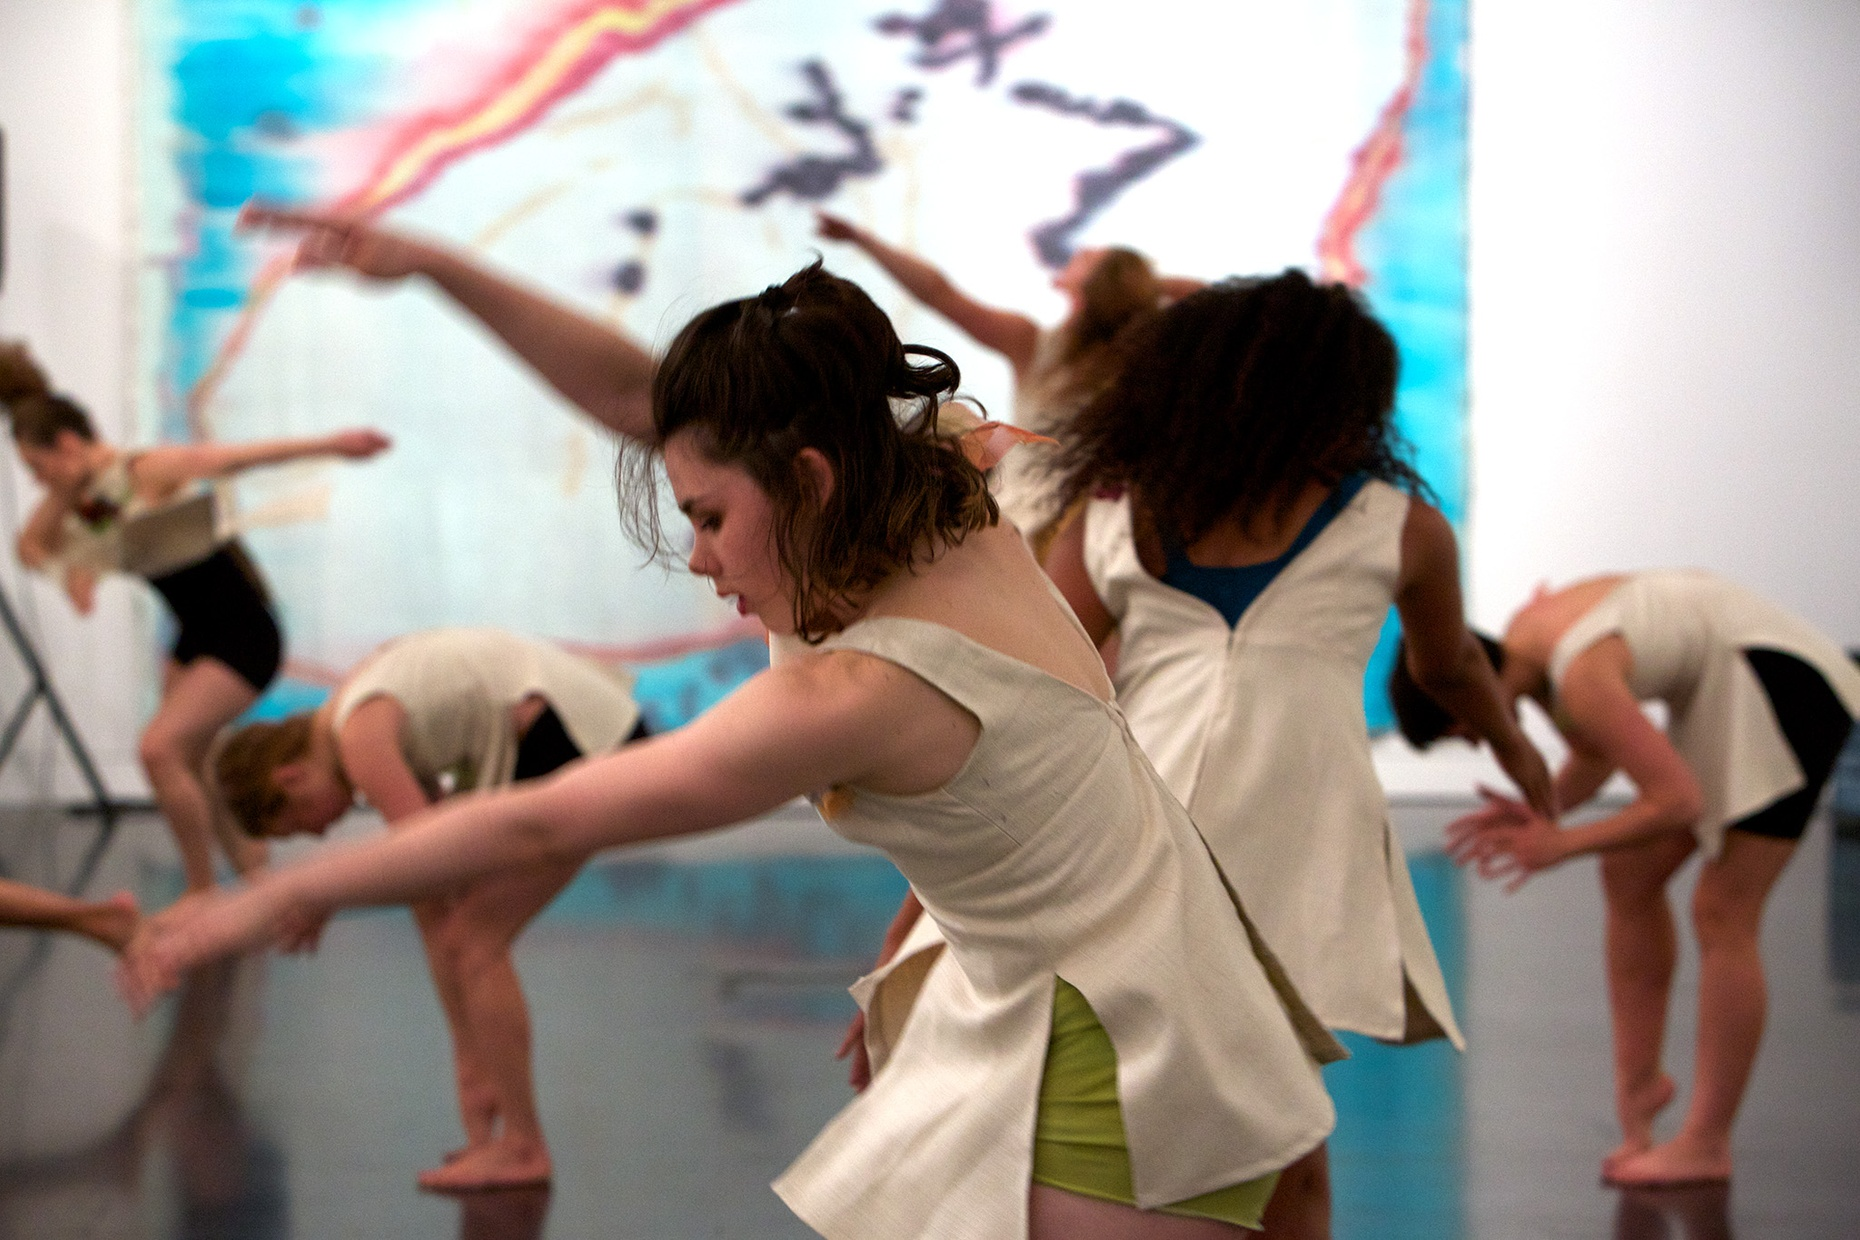 A white, female dancer caught in motion in front of a group of dancers in front of a large blue, red, white, yellow, and purple painting.